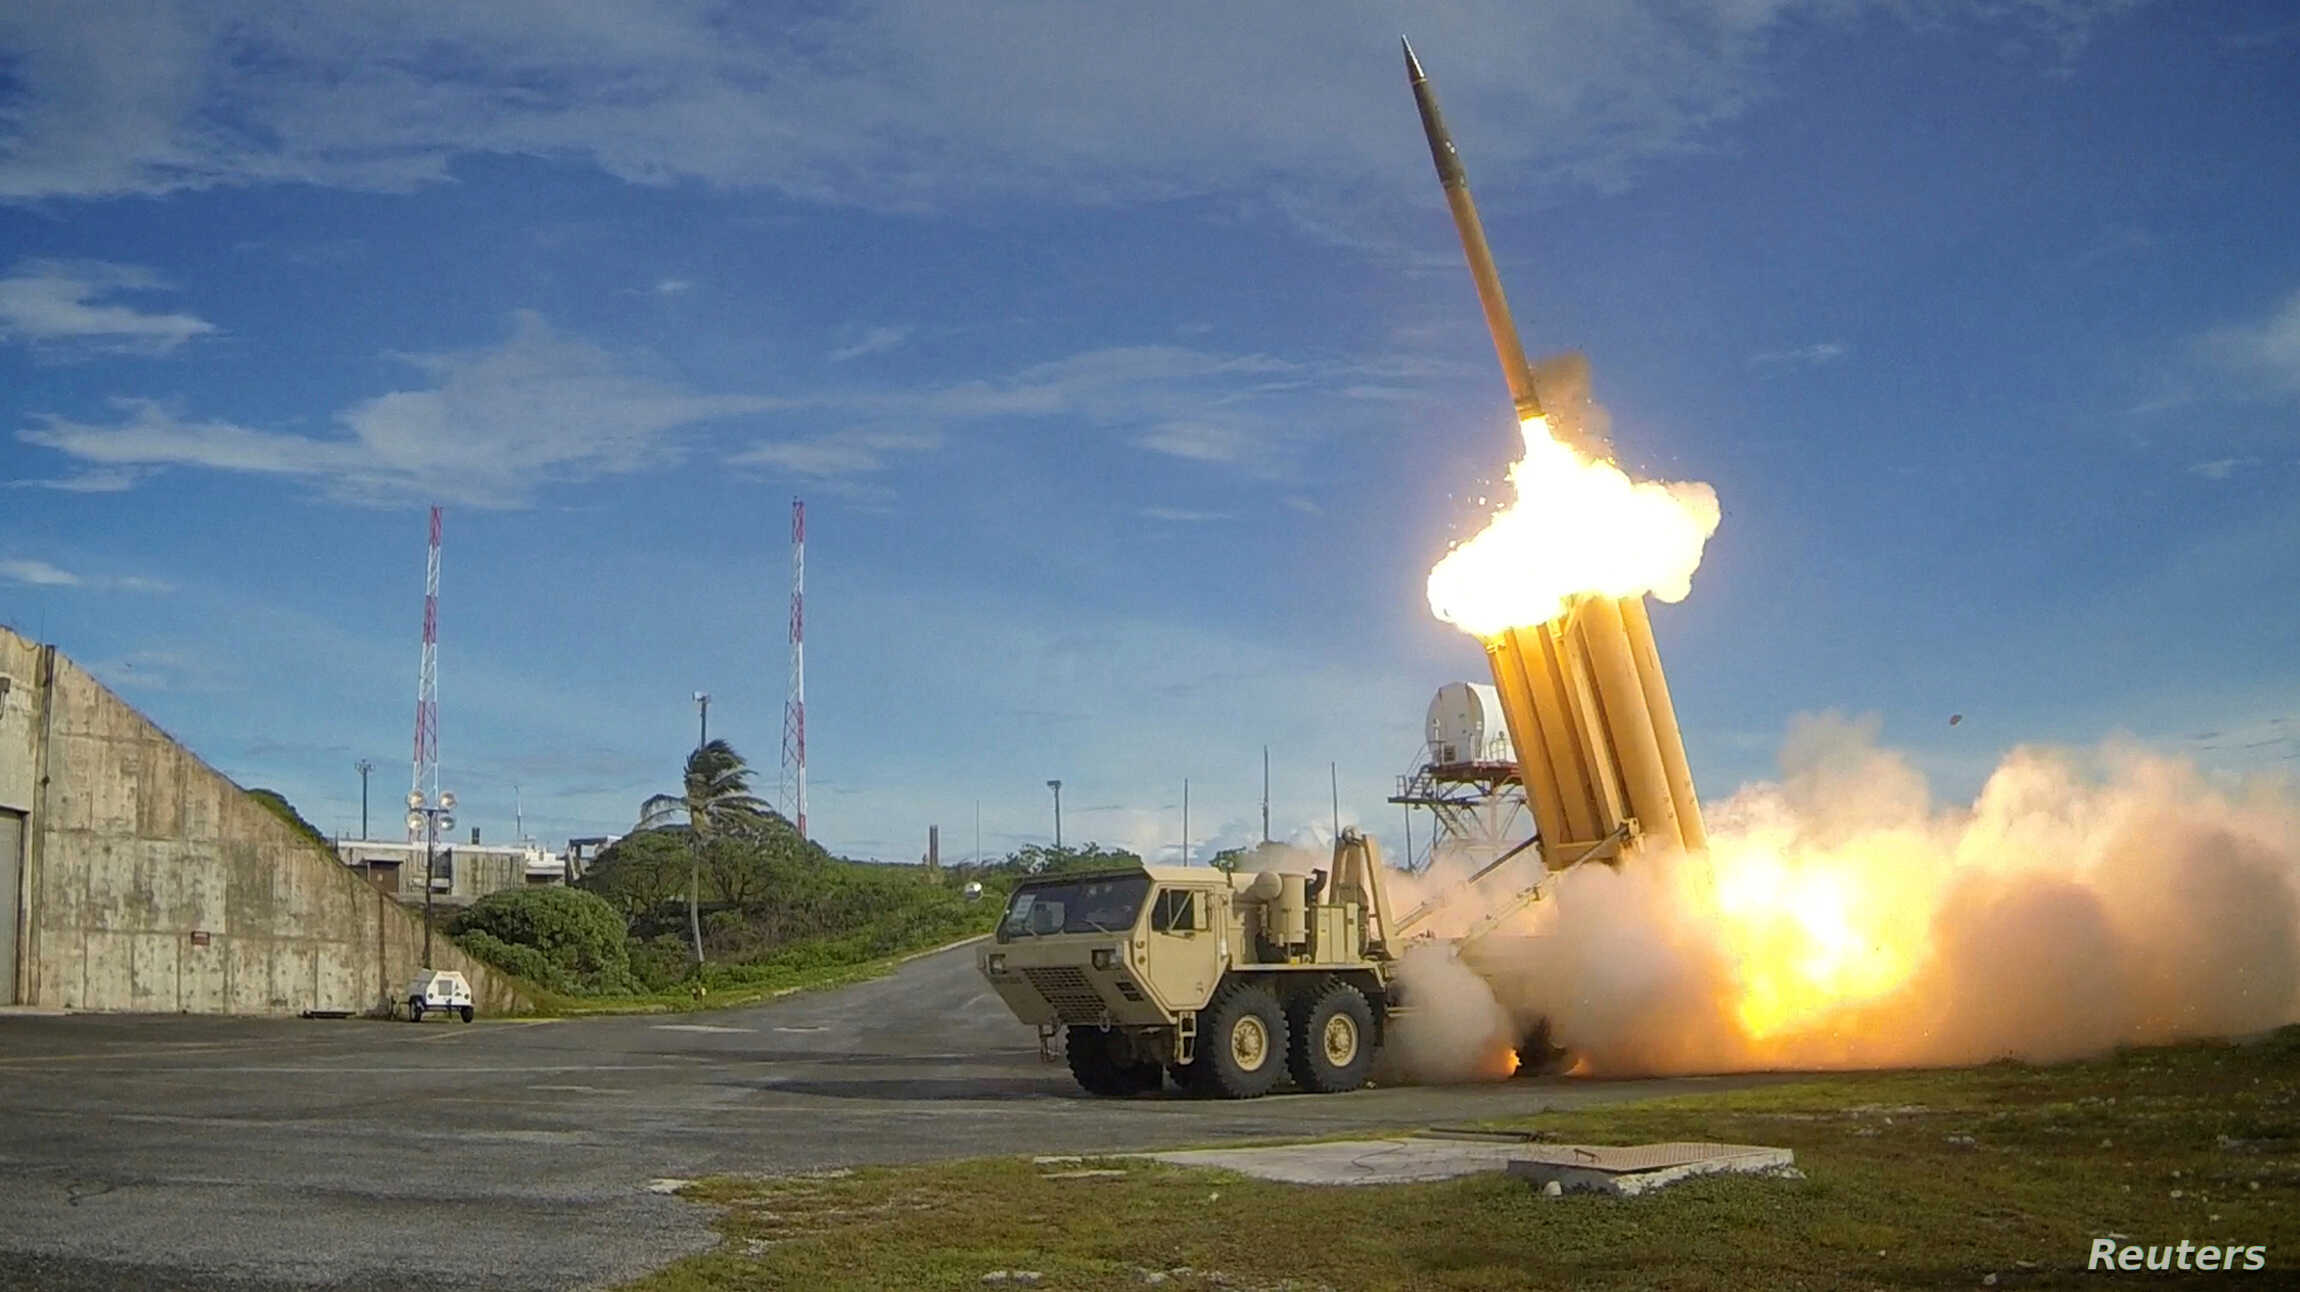 A Terminal High Altitude Area Defense (THAAD) interceptor is launched during a successful intercept test, in this undated photo provided by the U.S. Department of Defense.